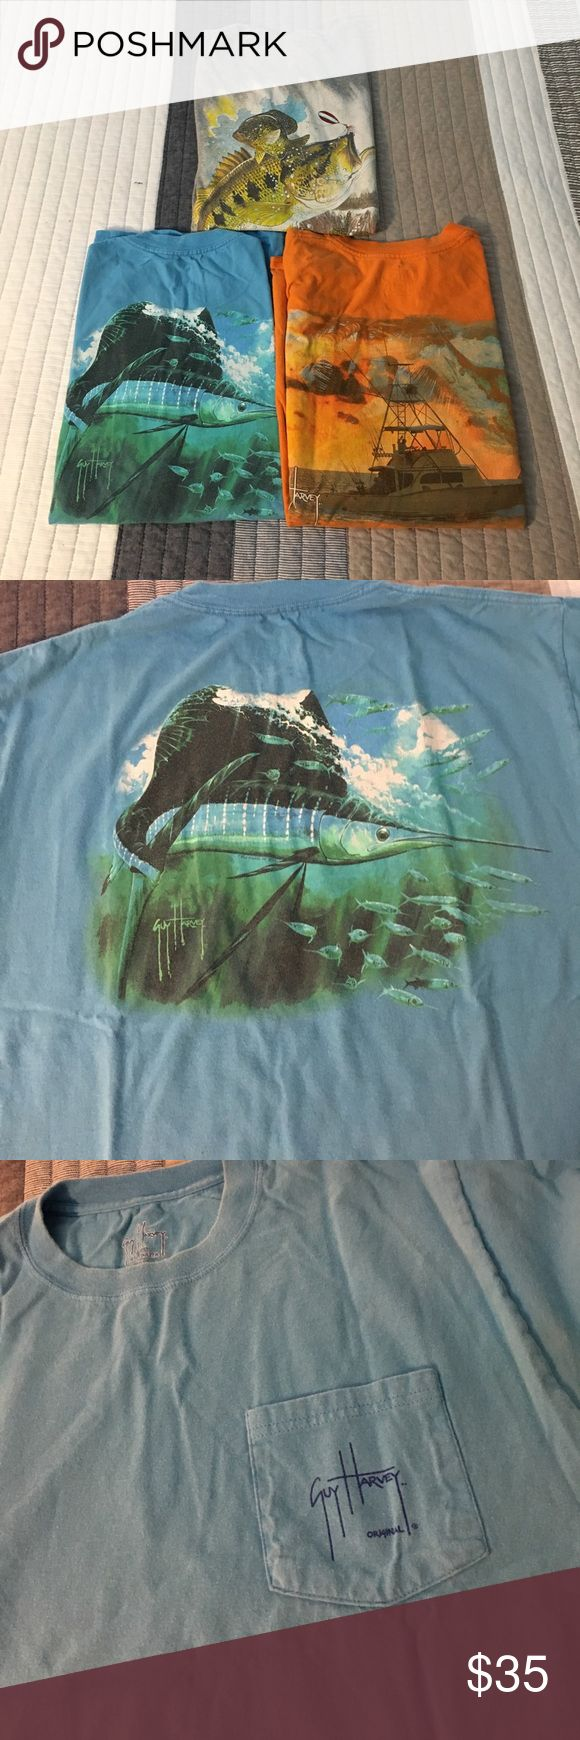 3 Guy Harvey fishing t-shirts Two pocket t-shorts, orange and blue. One t-shirt without a pocket, grey. All in great condition. Graphics on the back of each shirt with the Guy Harvey signature on the front of the shirt. Guy Harvey Shirts Tees - Short Sleeve